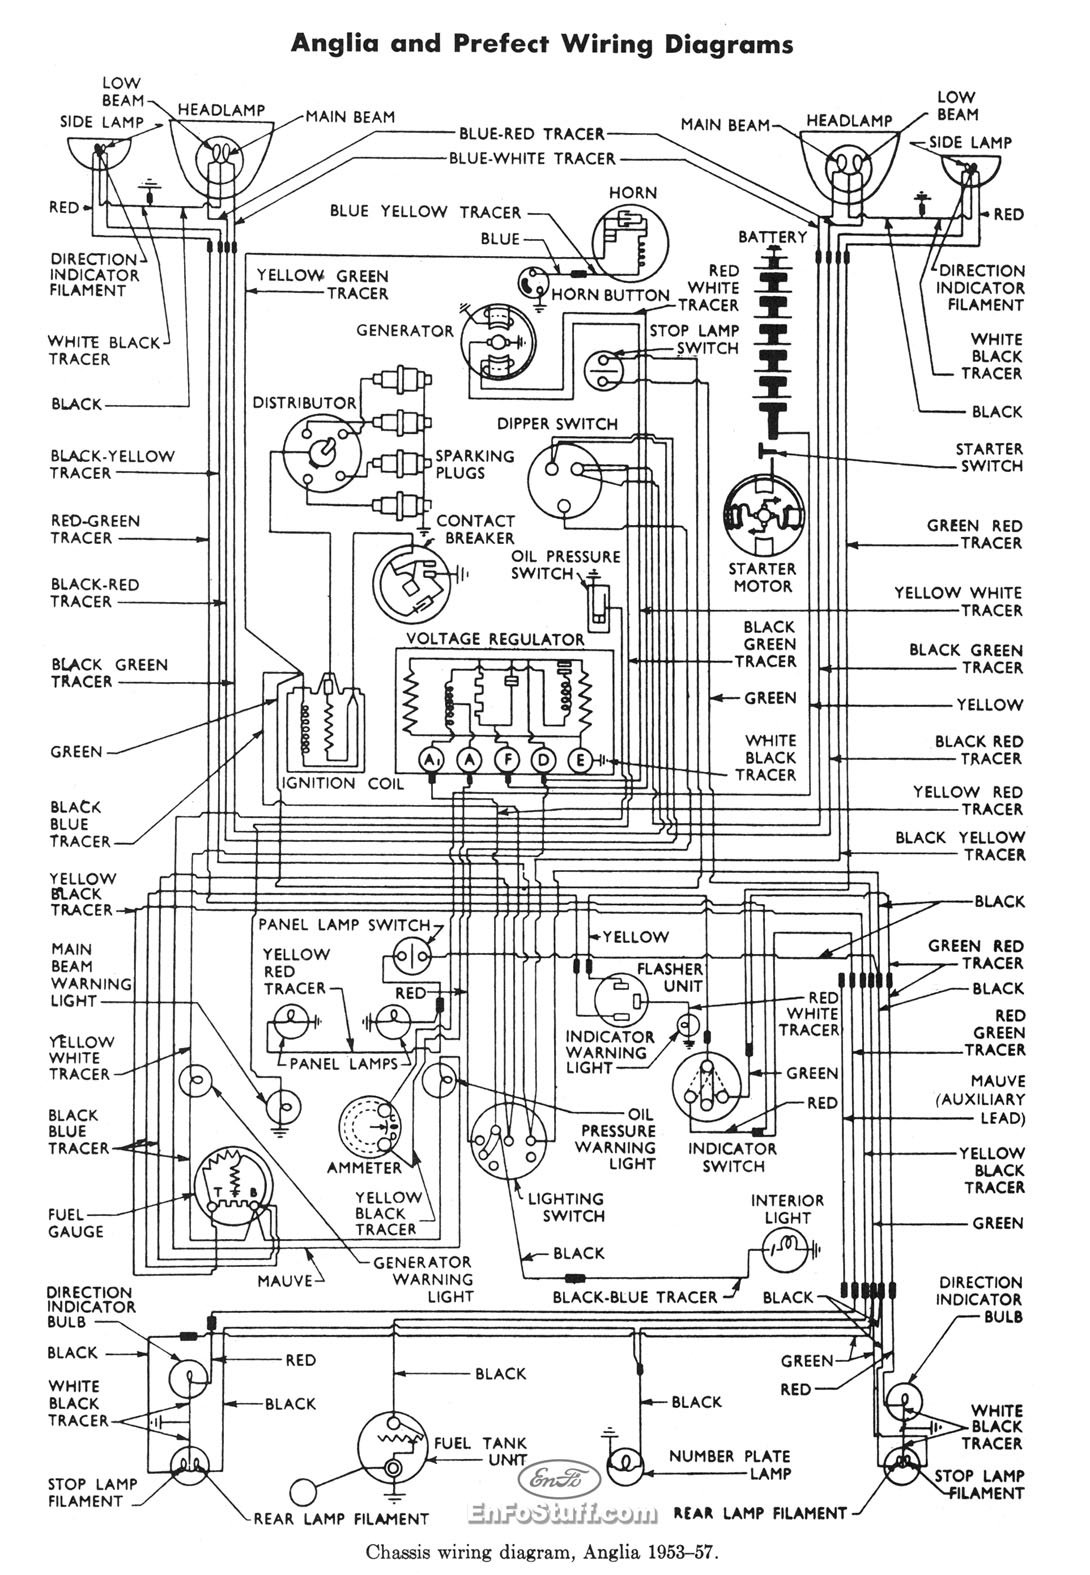 1970 Ford 2000 Tractor Wiring Not Lossing Diagram 12 Volt Conversion Harness Parts Todays Rh 3 8 4 1813weddingbarn Com 601